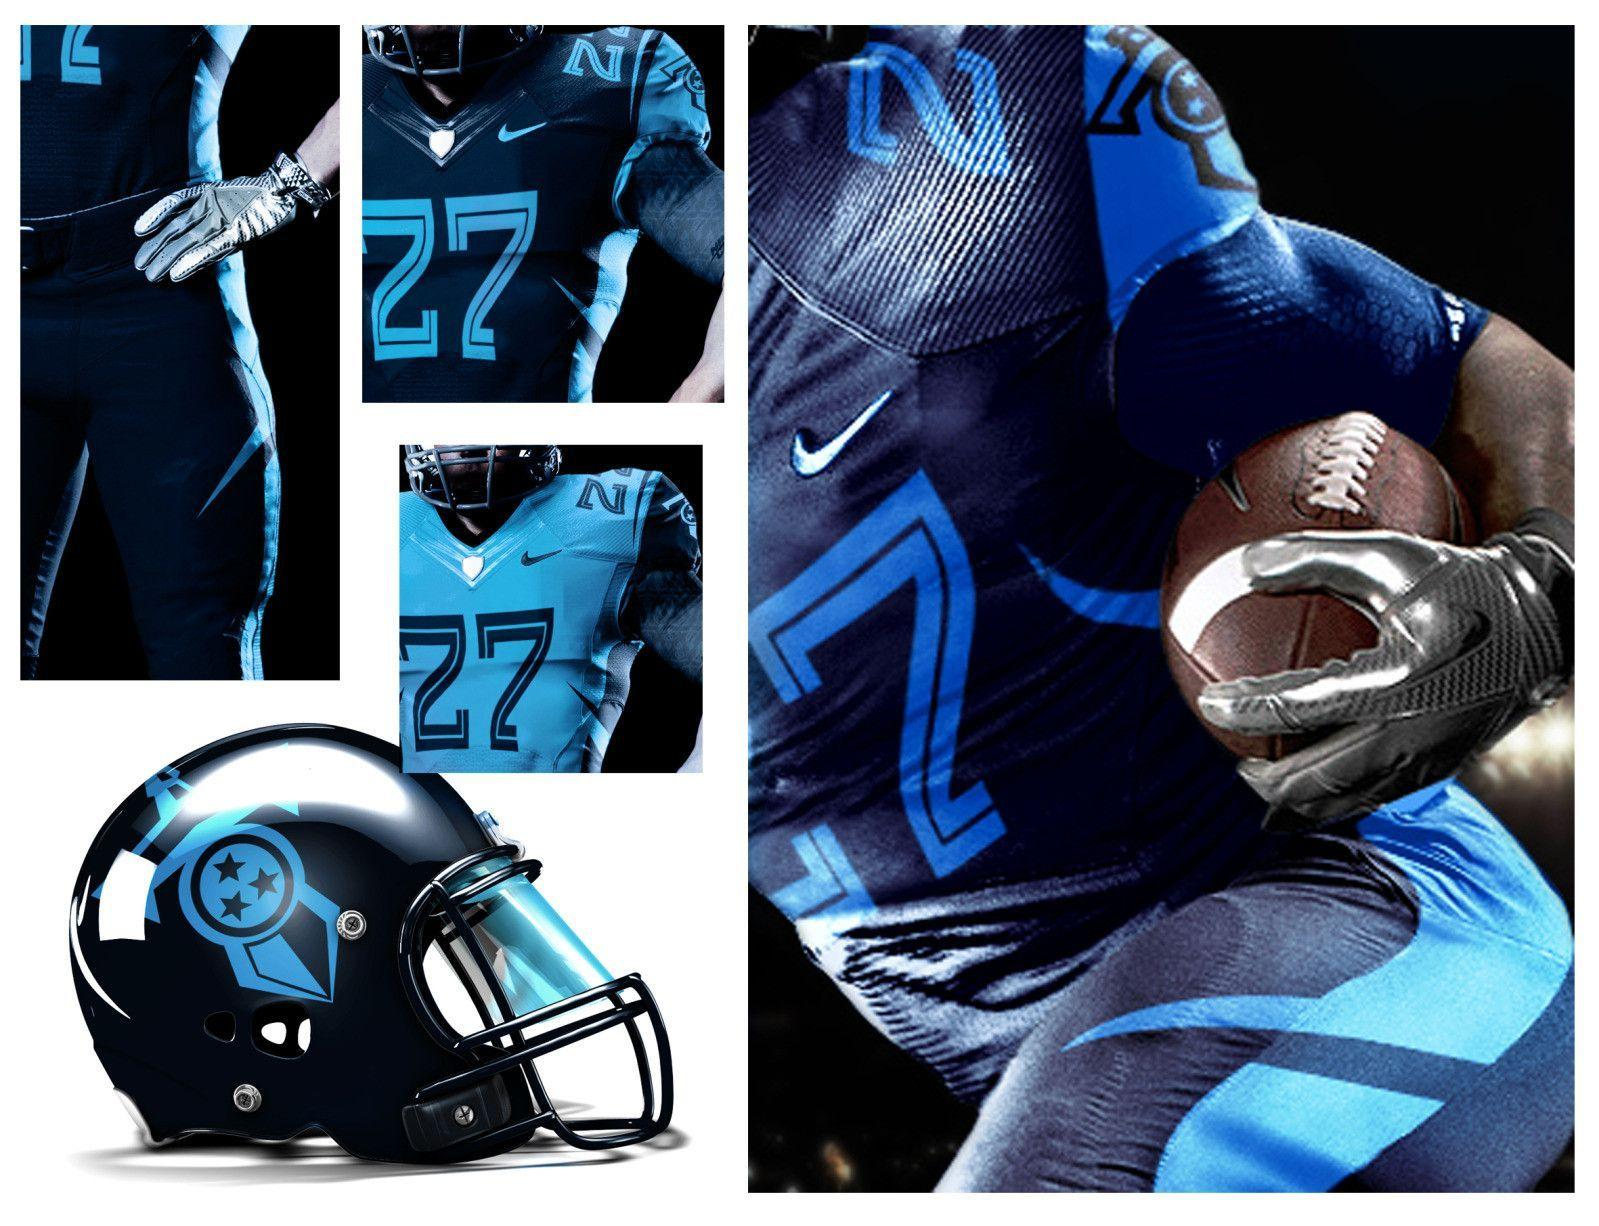 Wallpapers Tennessee Titans Helmet Jersey Wallpapers